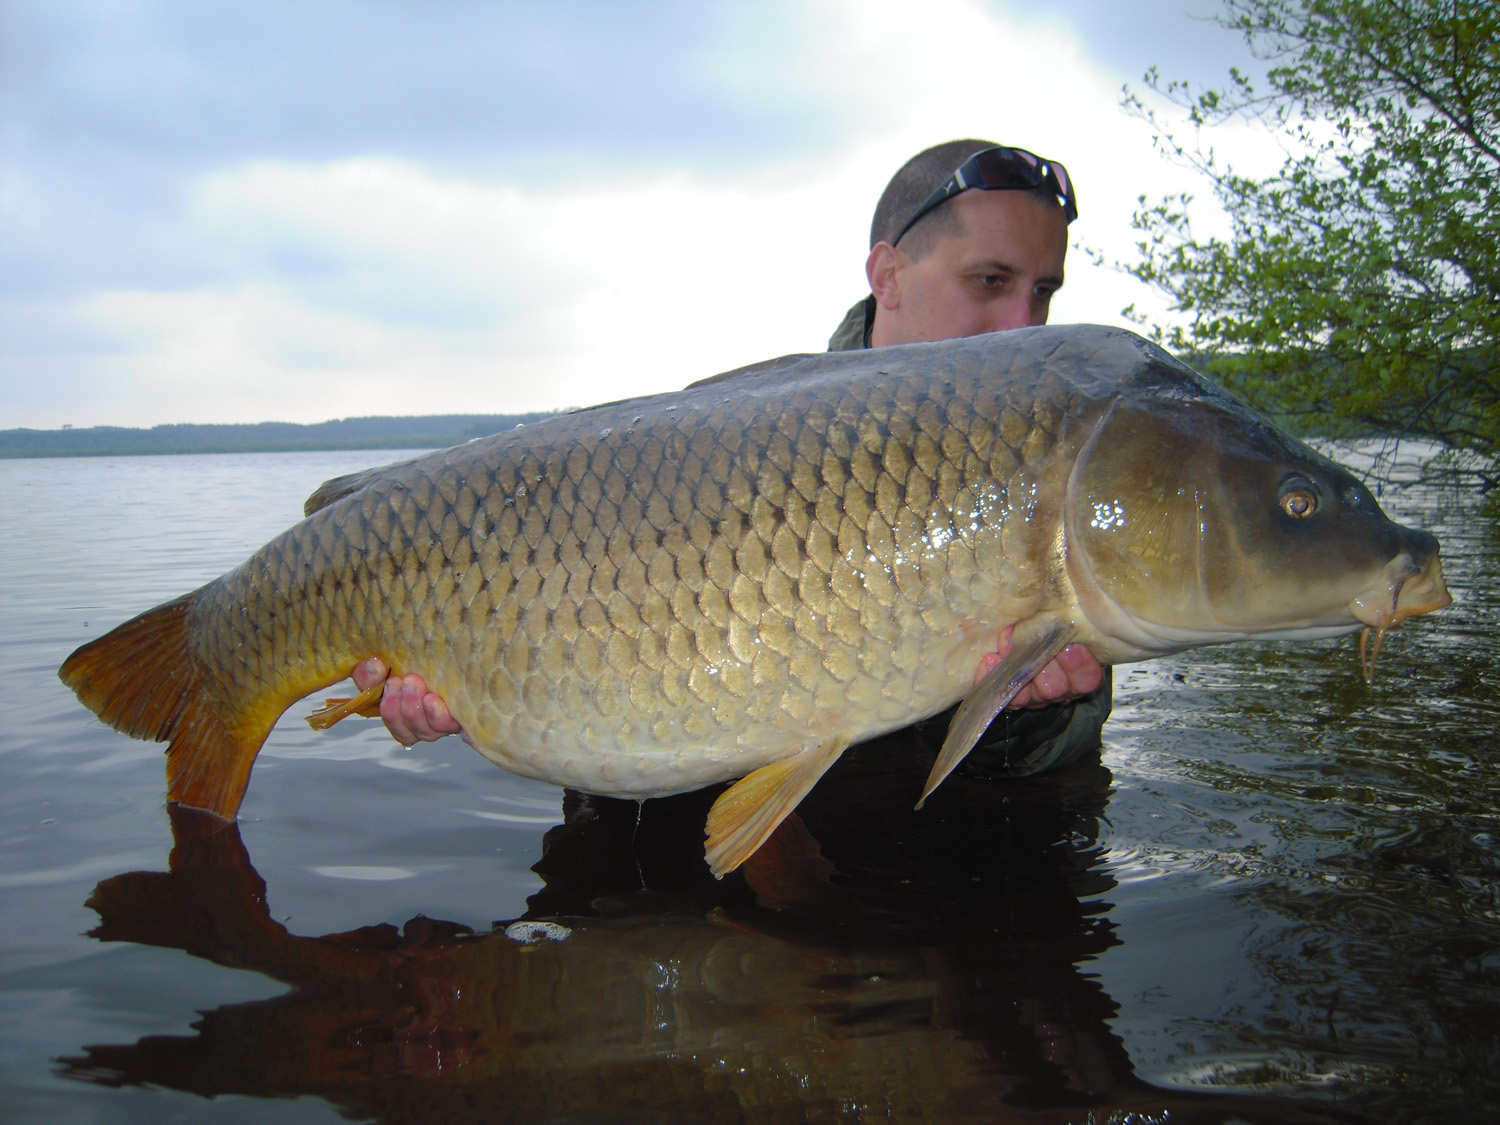 http://www.starbaits.com/fichiers/images/team/gallery/COLLET_Jerome/8 Jérôme Collet.jpg